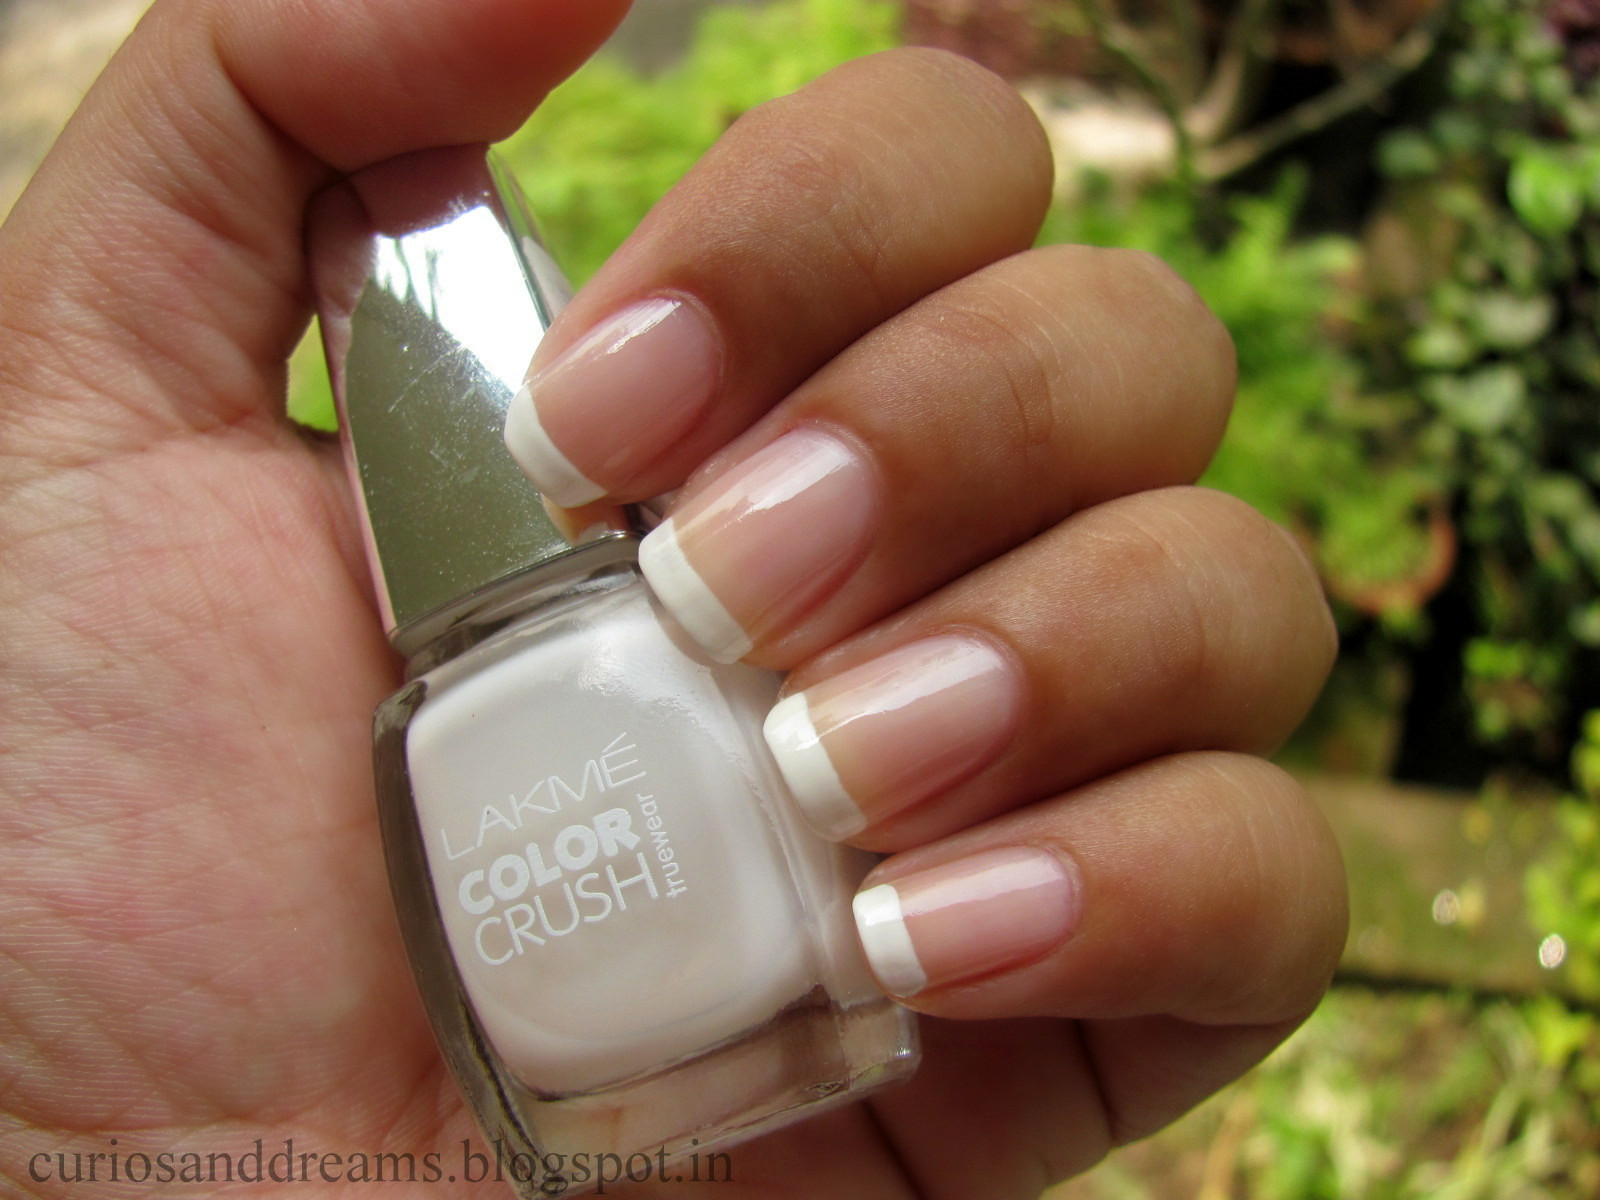 Lakme color crush no 26, Lakme color crush no 26 review, french manicure